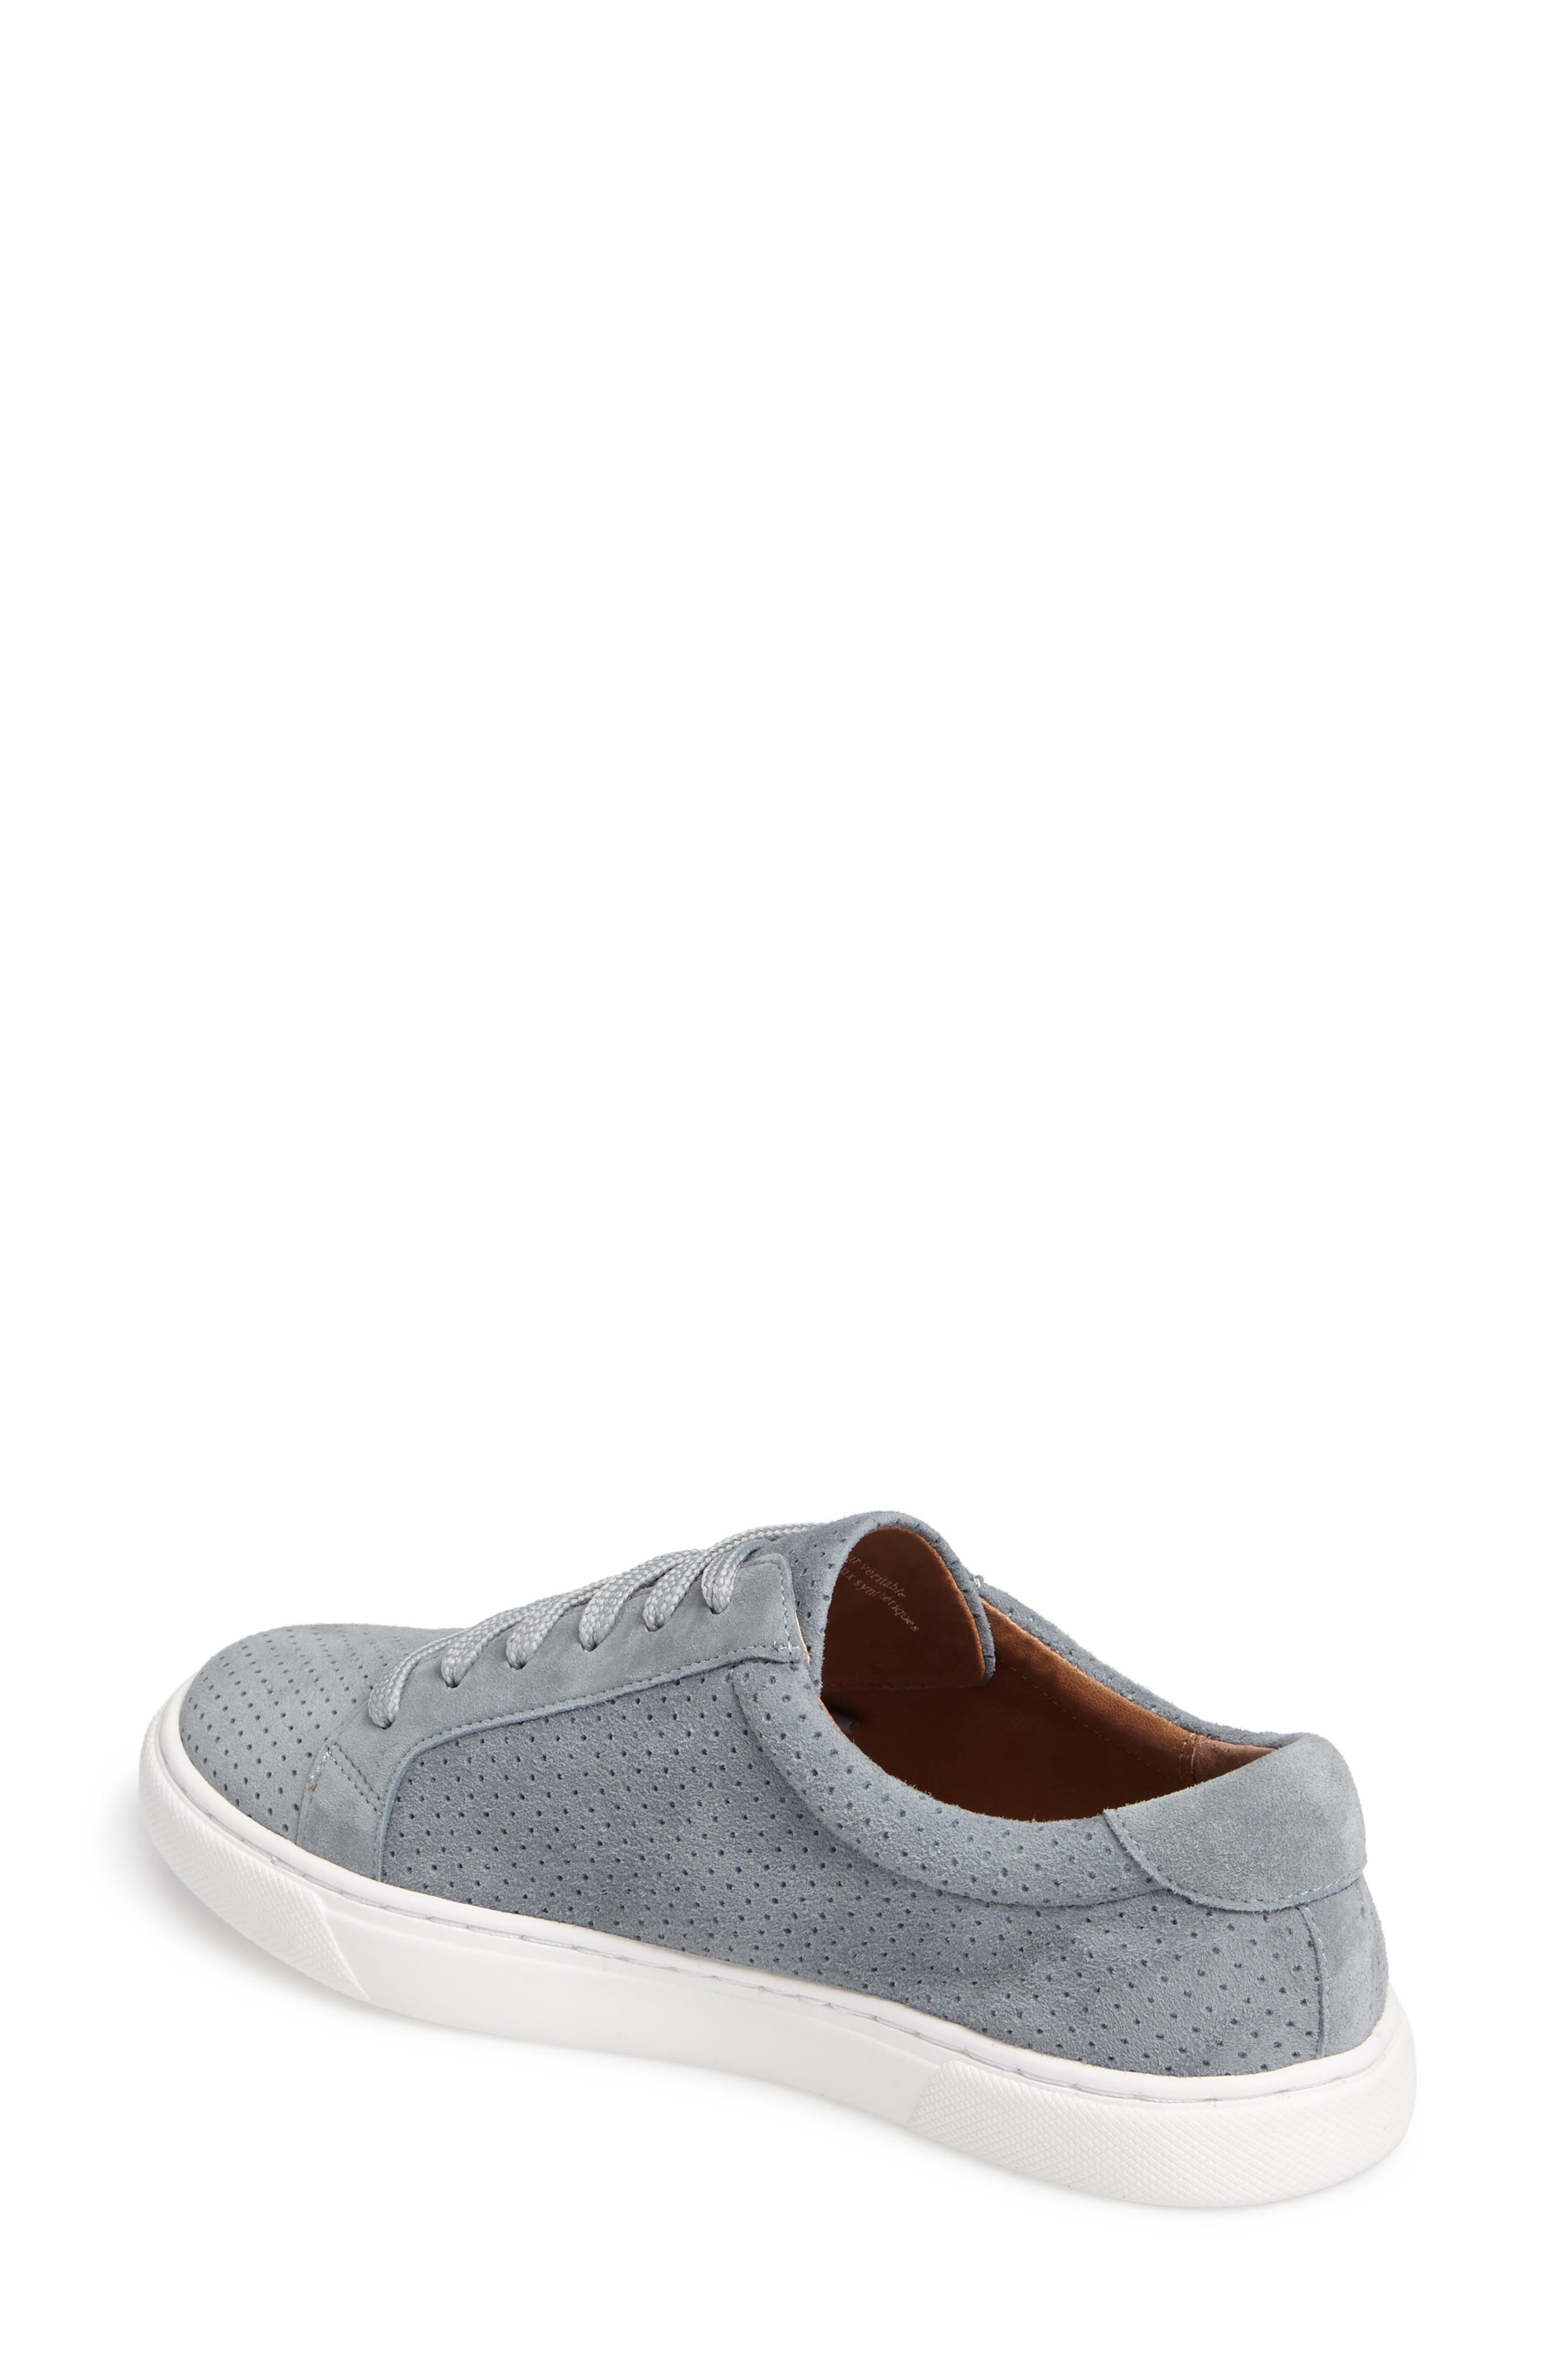 Alternate Image 2  - Caslon® Cassie Perforated Sneaker (Women)